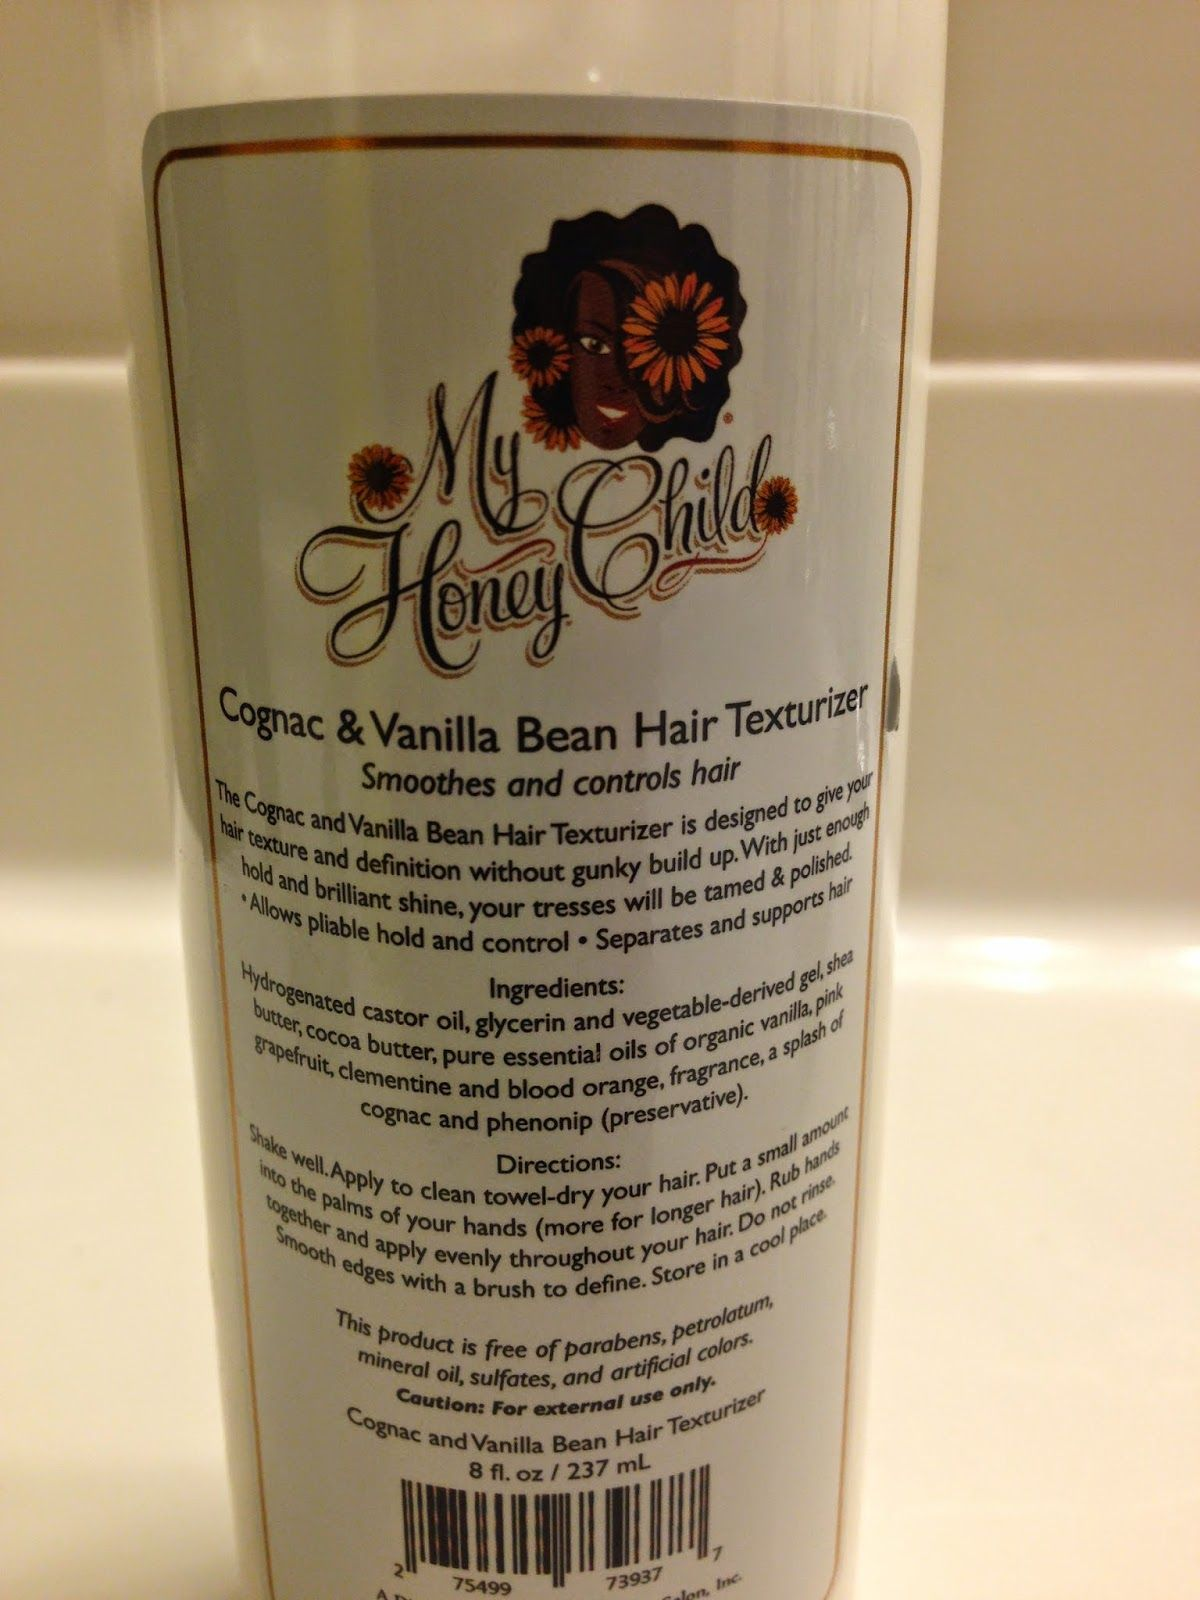 The Cognac u Vanilla Bean Texturizer by My Honey Child provides a